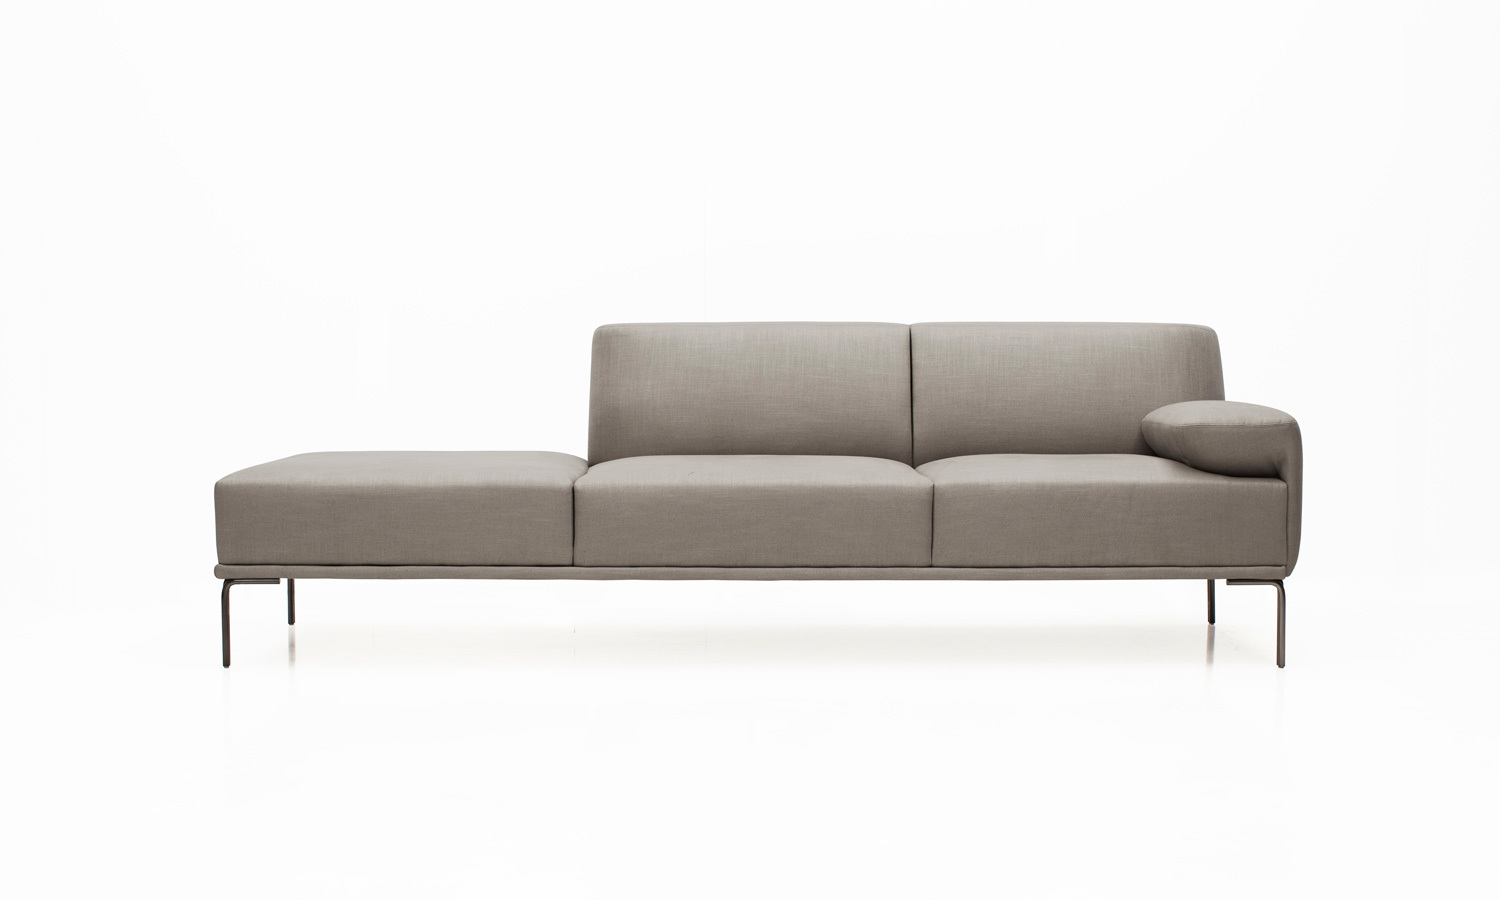 Joquer Daily Sofa Contract